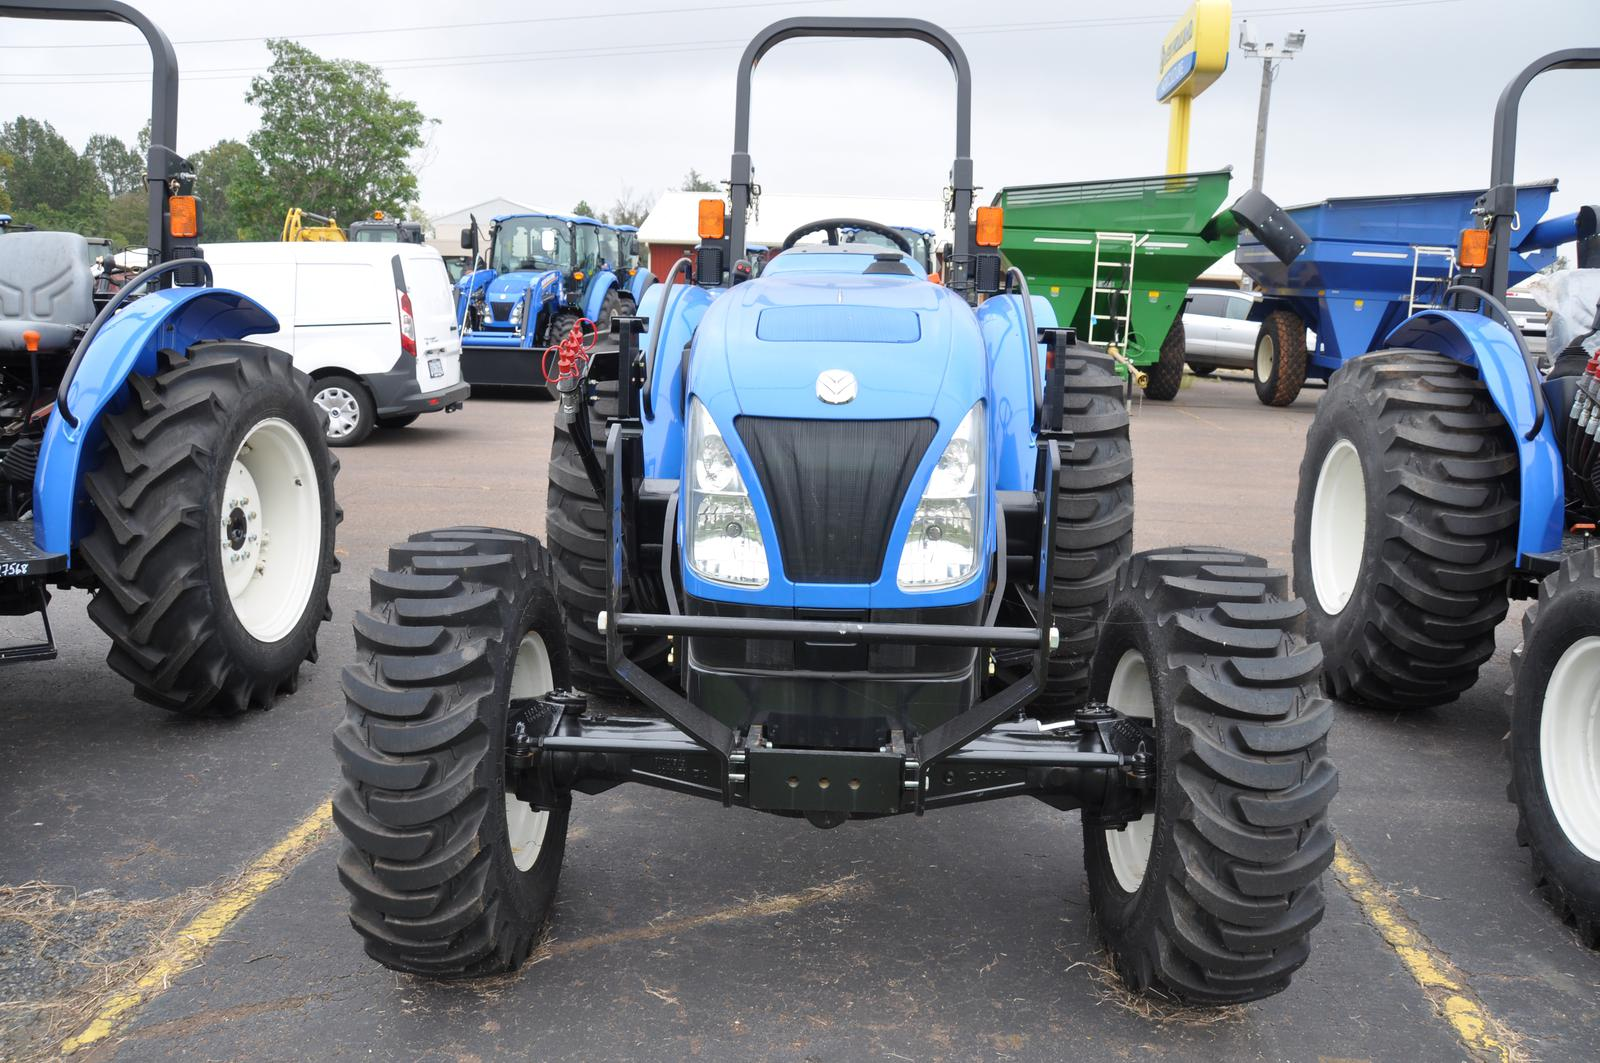 2018 New Holland Workmaster 50 Utility Tractor (2)